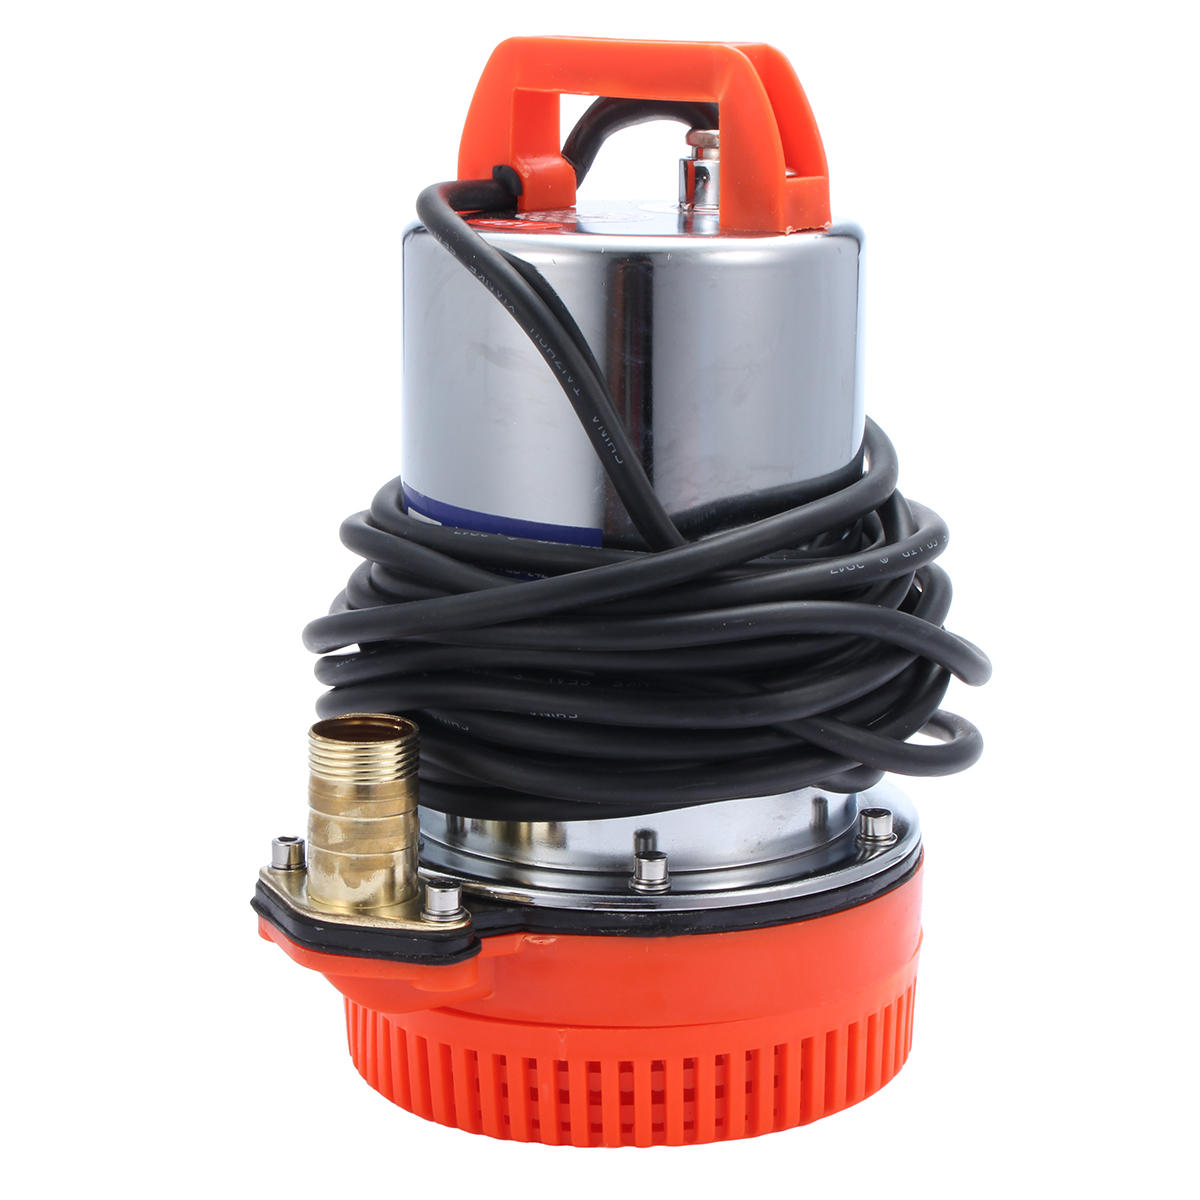 48V Submersible Clean Dirty Water Pump 1 5HP Swimming Pool